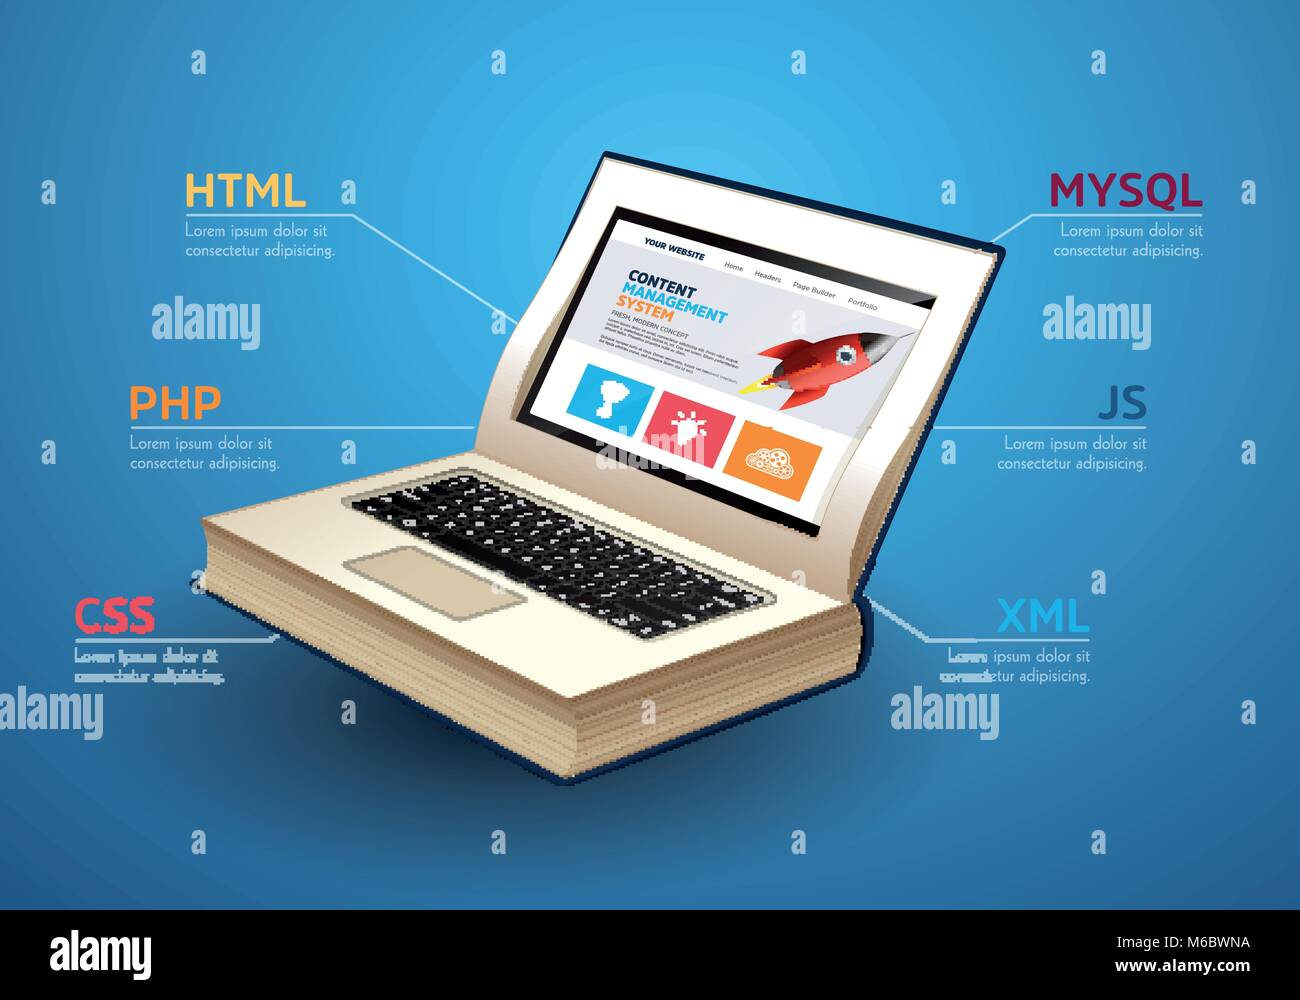 Programming language concept - PHP, CSS, XML, HTML, Javascript learning - book as laptop - Stock Image